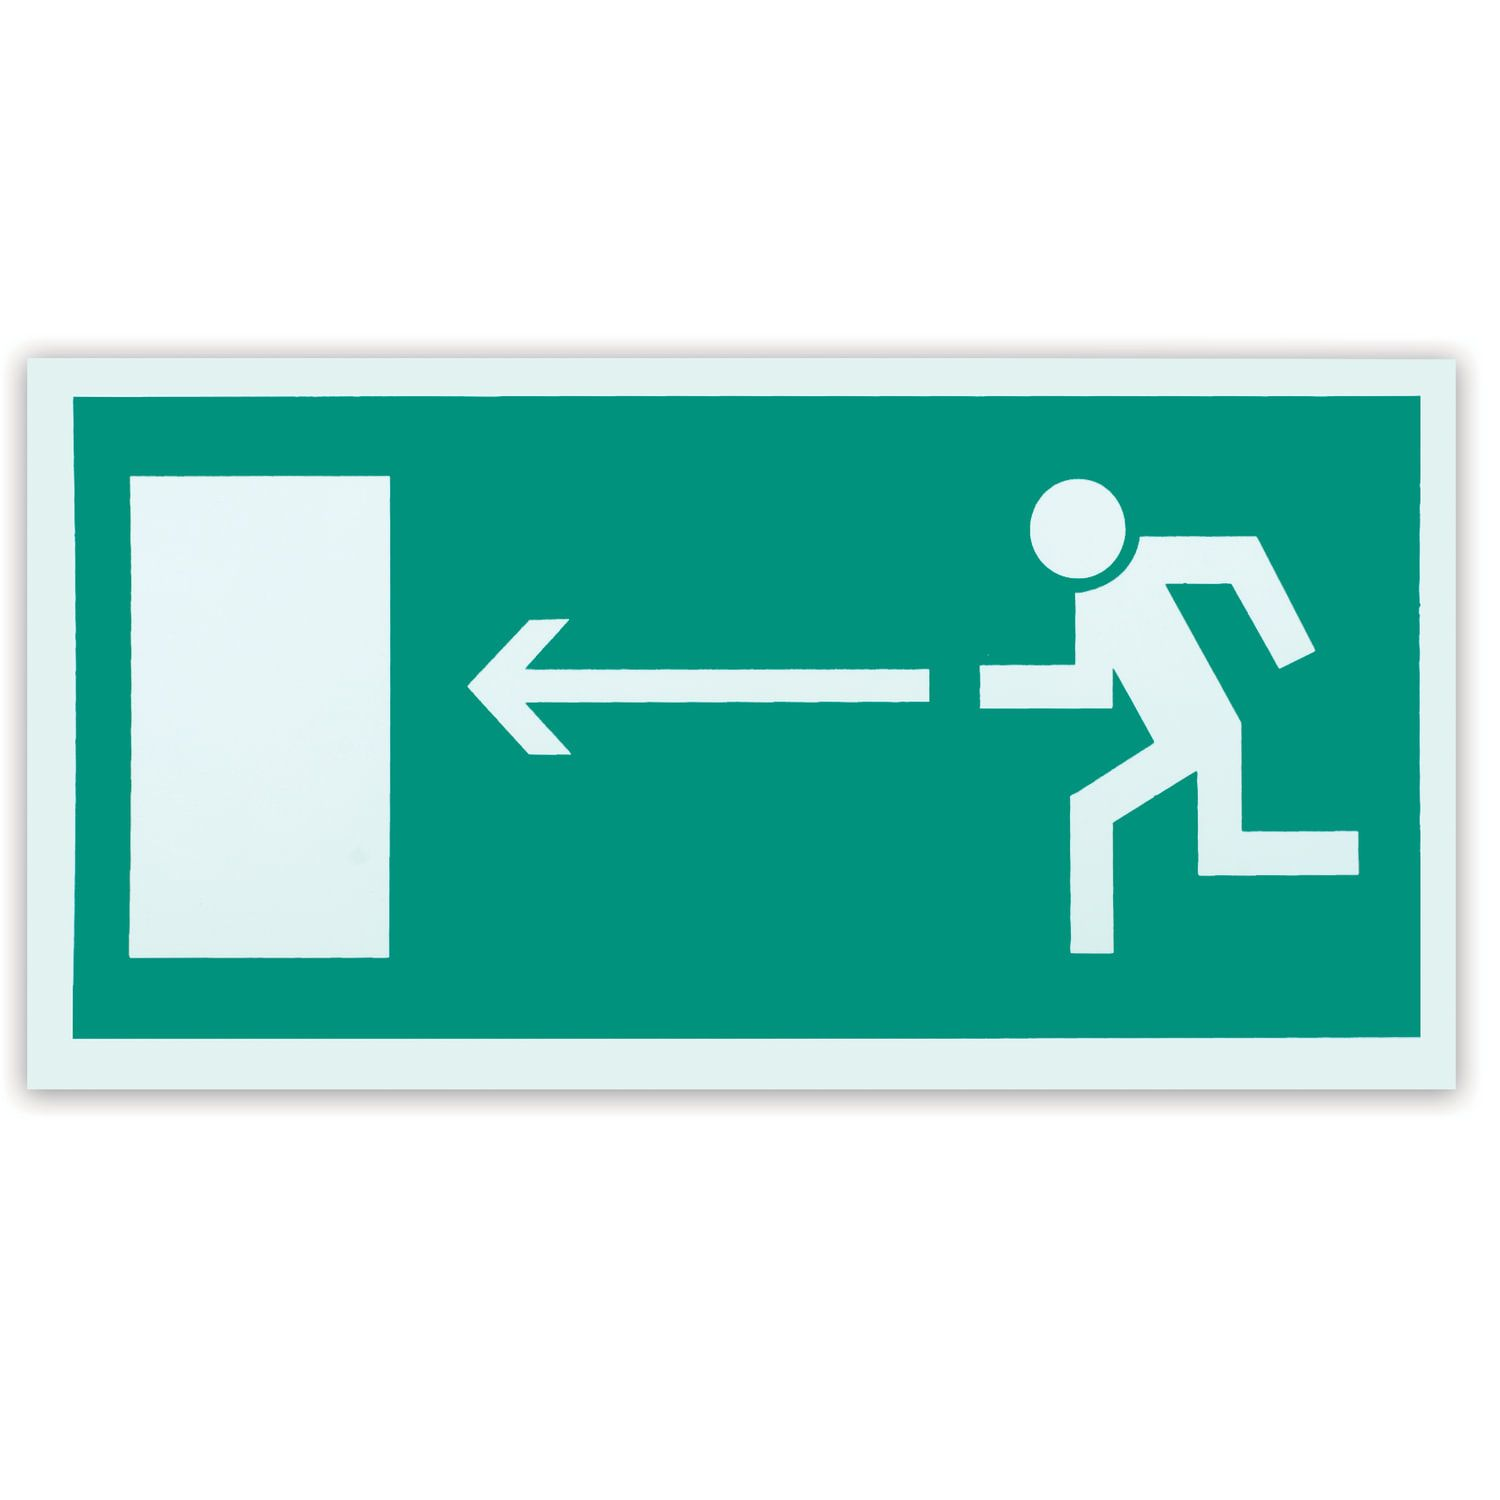 """Evacuation sign """"Direction to the evacuation exit to the left"""", 300x150 mm, self-adhesive, photoluminescent"""